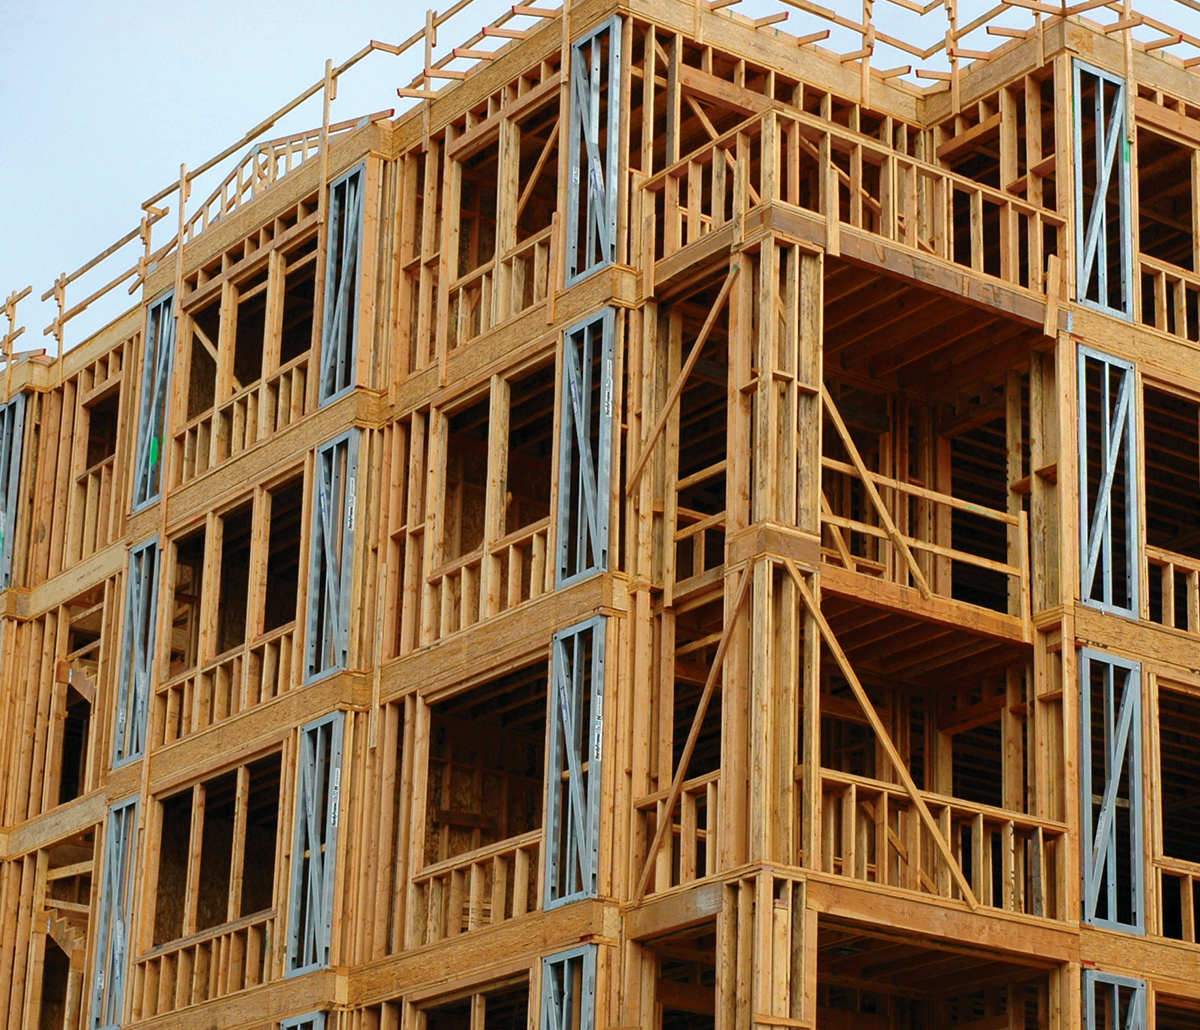 MiTek Shear Wall System Engineered Systems Products - Shear Wall System in place on jobsite